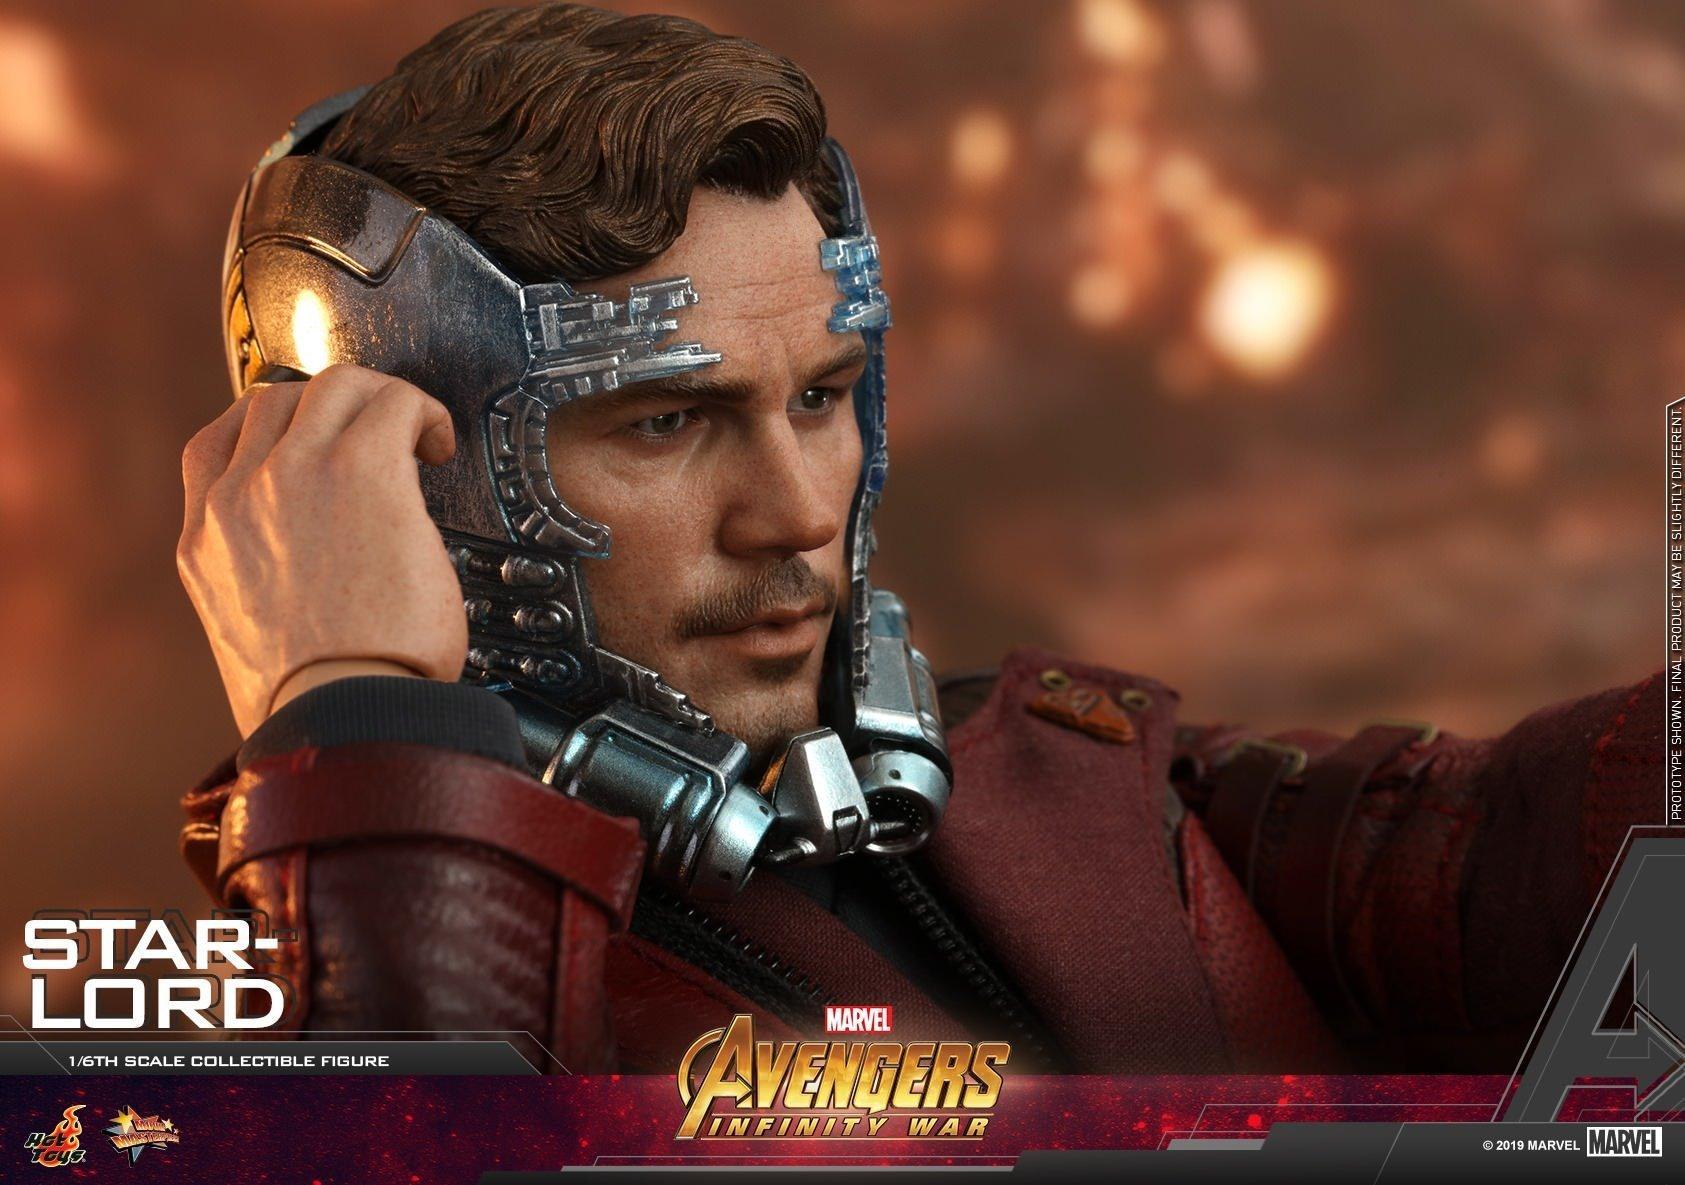 Star Lord: Avengers: Infinity War: MMS539: Hot Toys